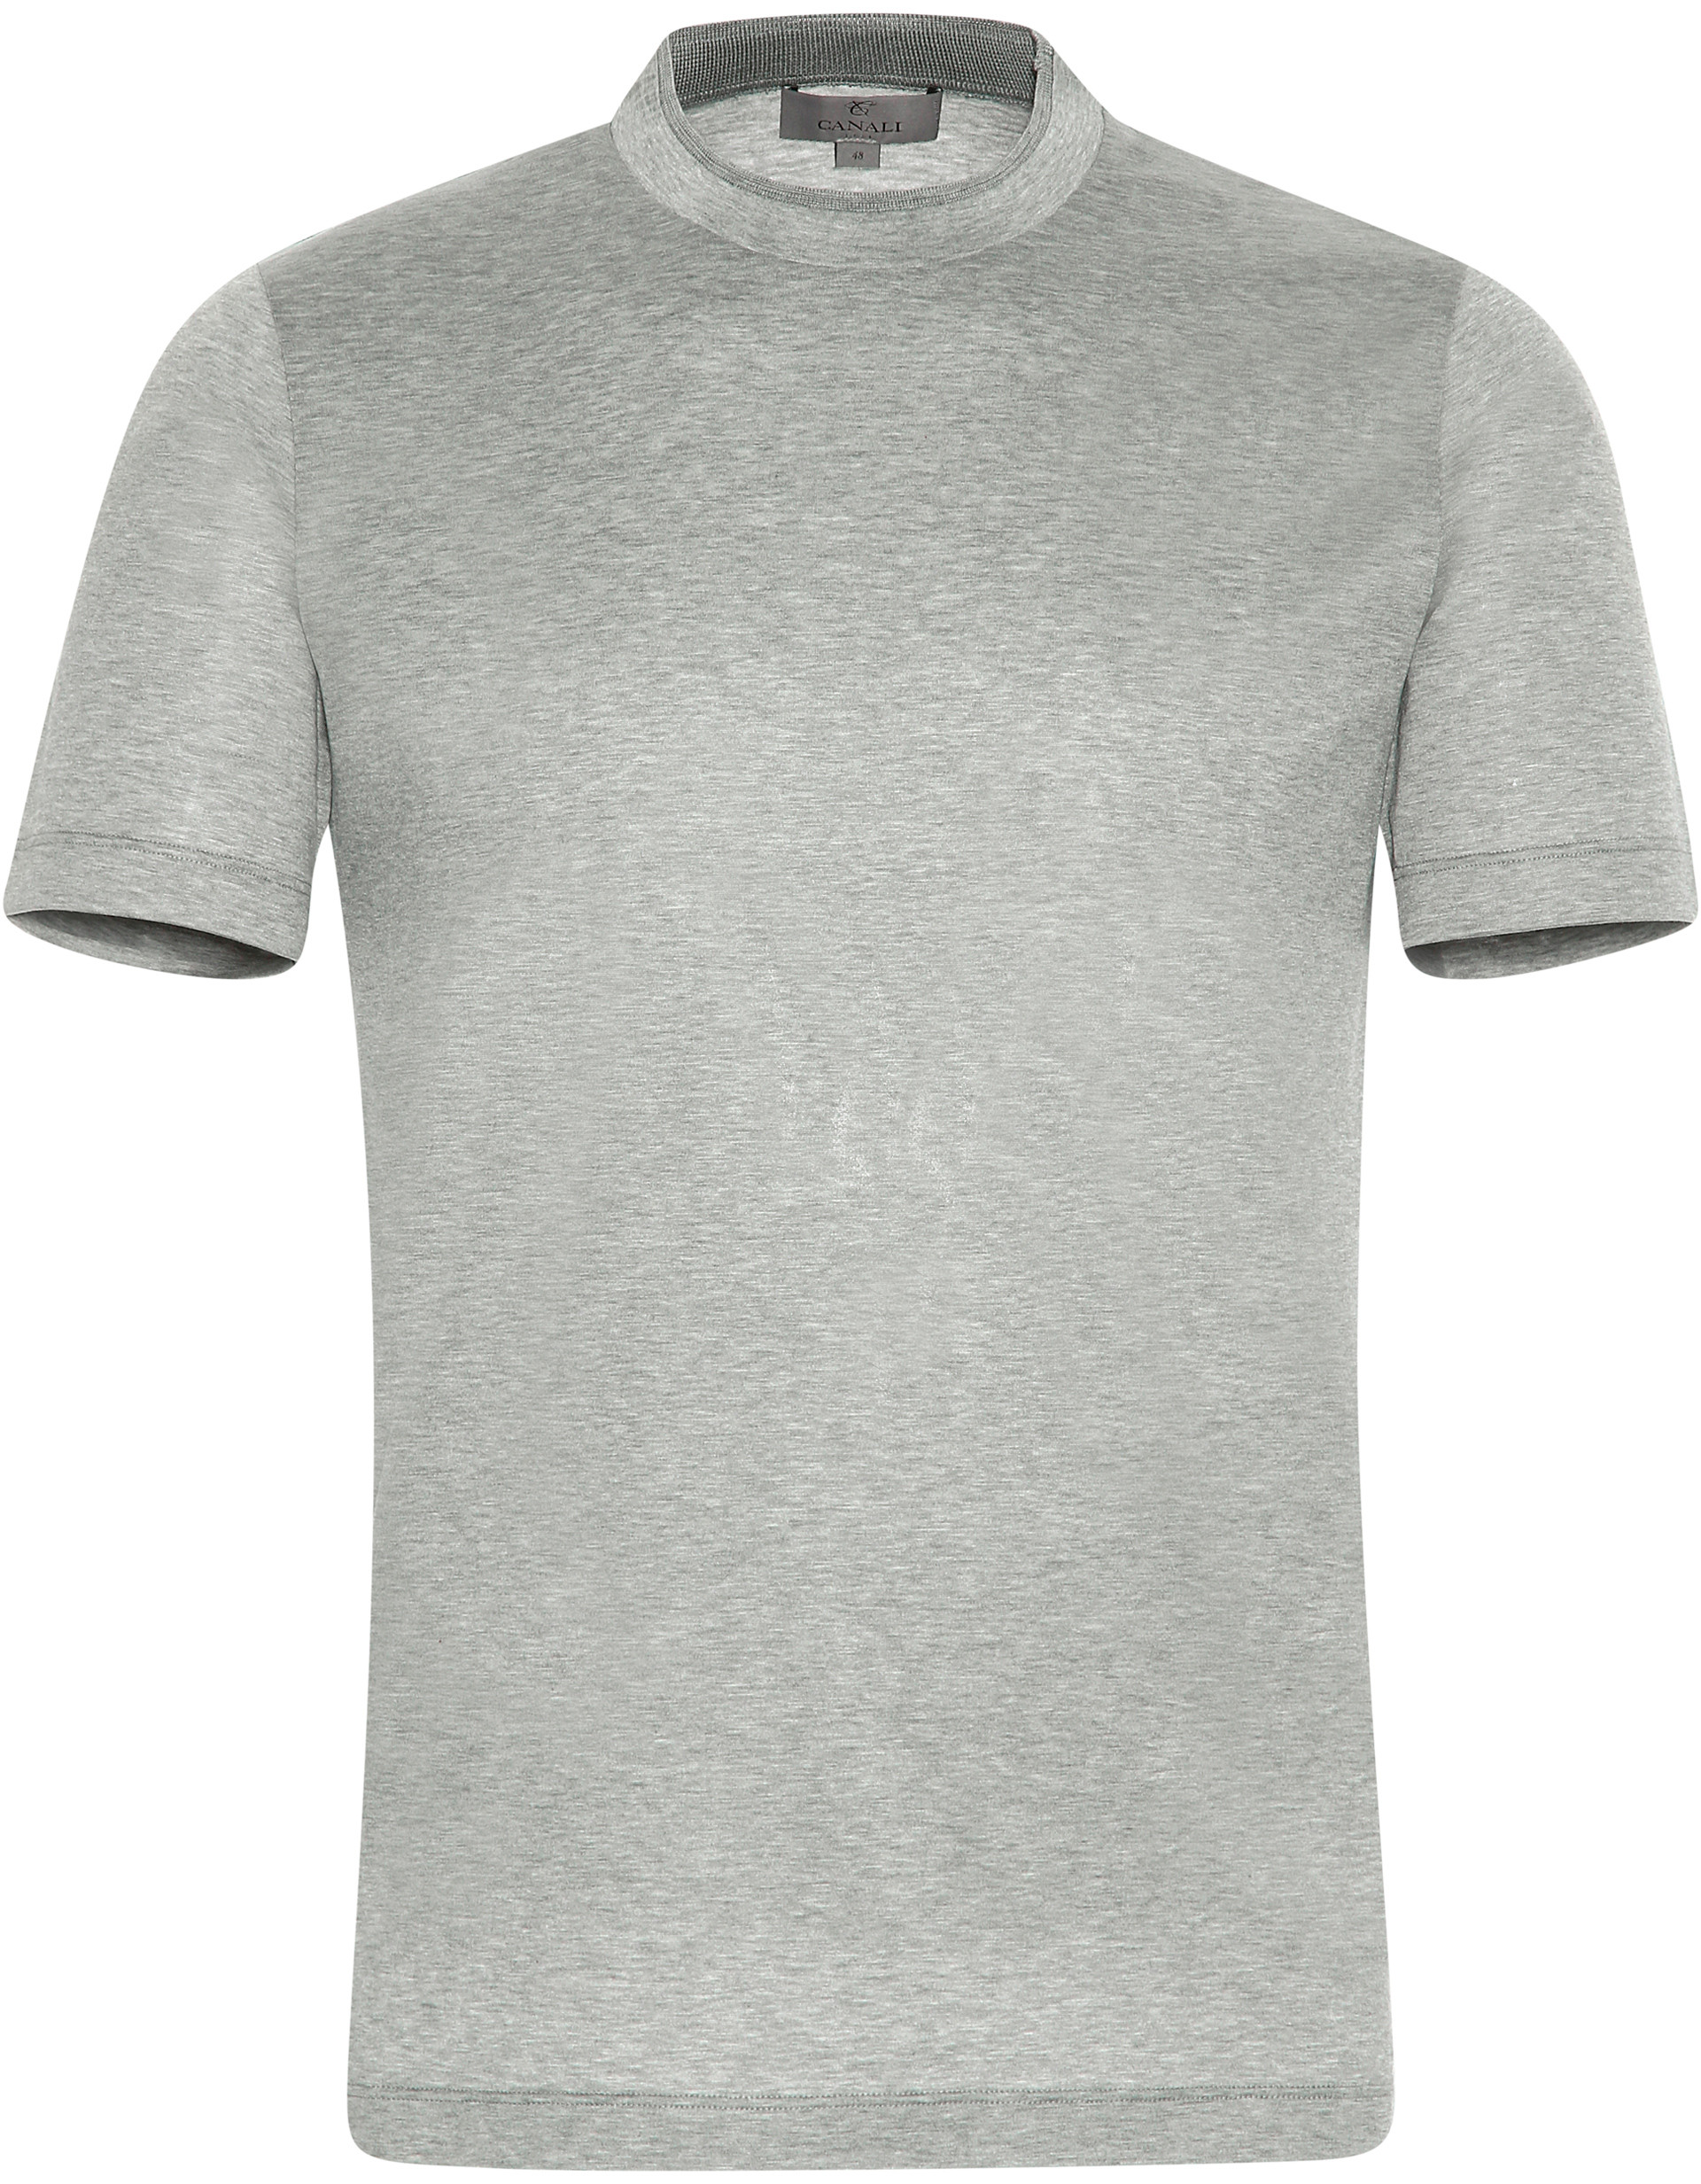 GRAY MERCERIZED COTTON T-SHIRT